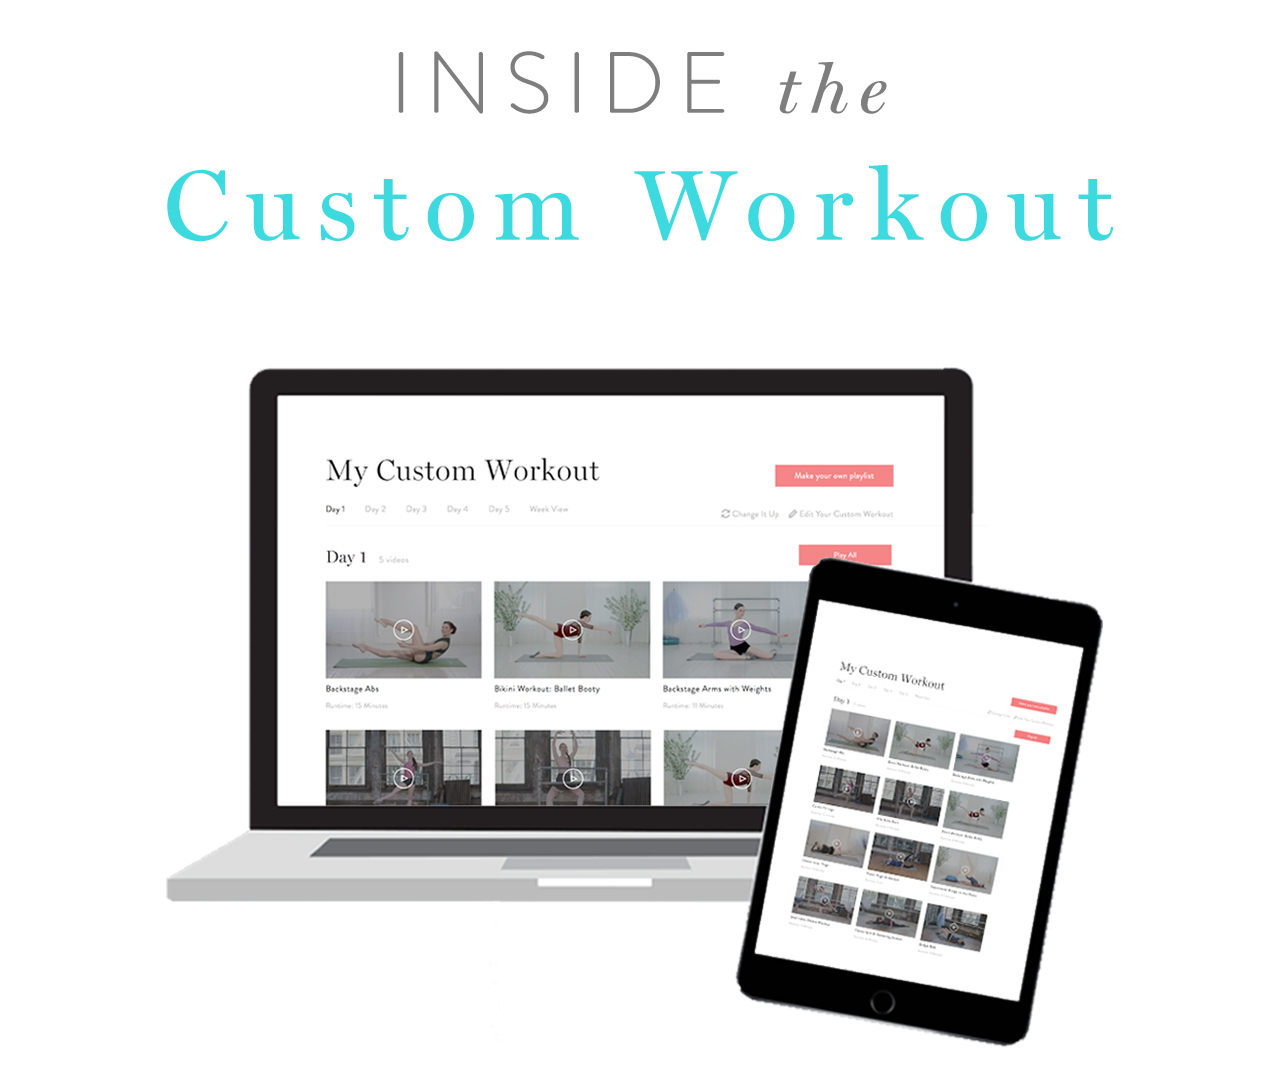 Inside the Custom Workout